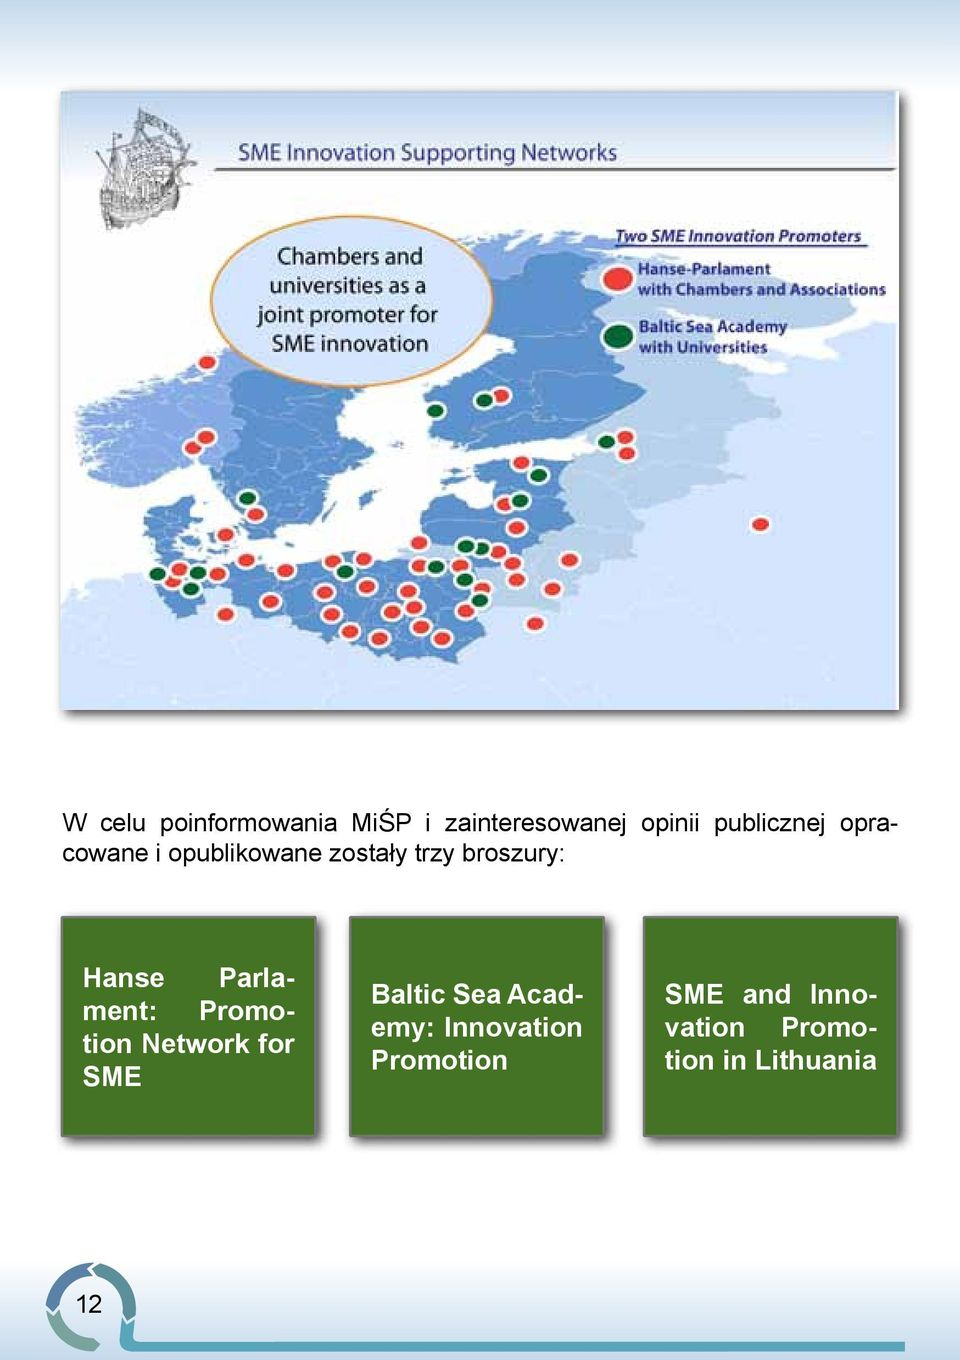 Hanse Parlament: Promotion Network for SME Baltic Sea